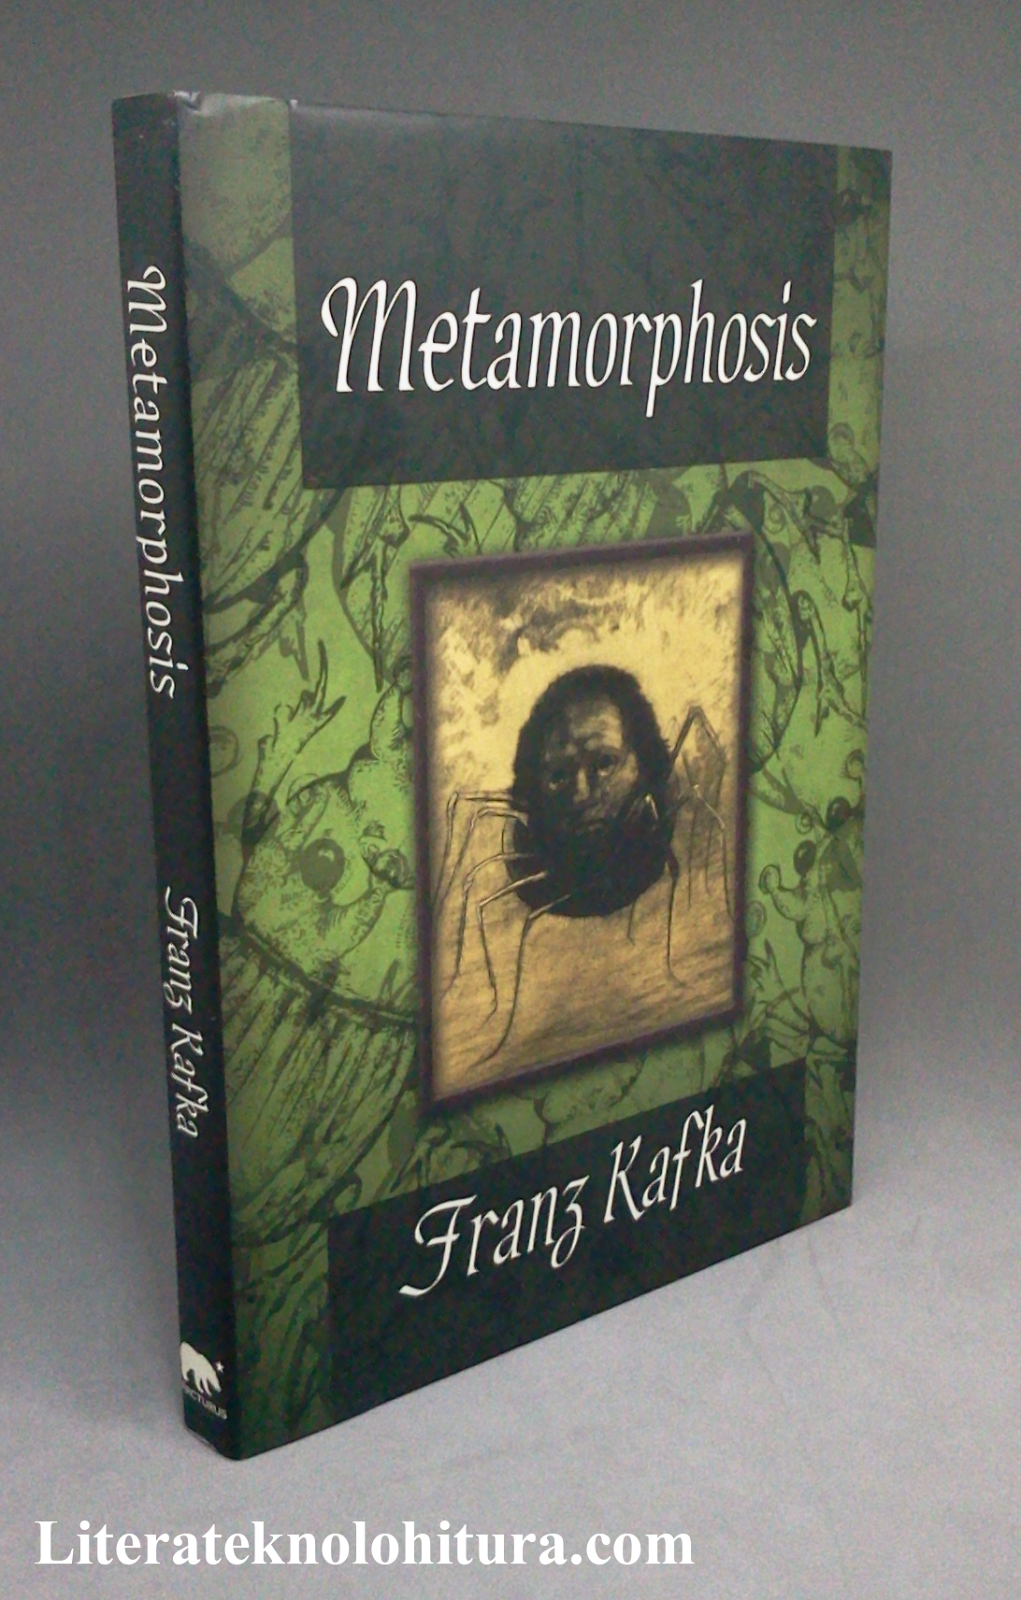 an analysis of character transformation in the metamorphosis a novel by franz kafka The book (the metamorphosis ) itself is a short novella but i think it would take an entire 1000 pages book itself to accommodate the interpretations and messages of this book understood by different interpreters and readers.